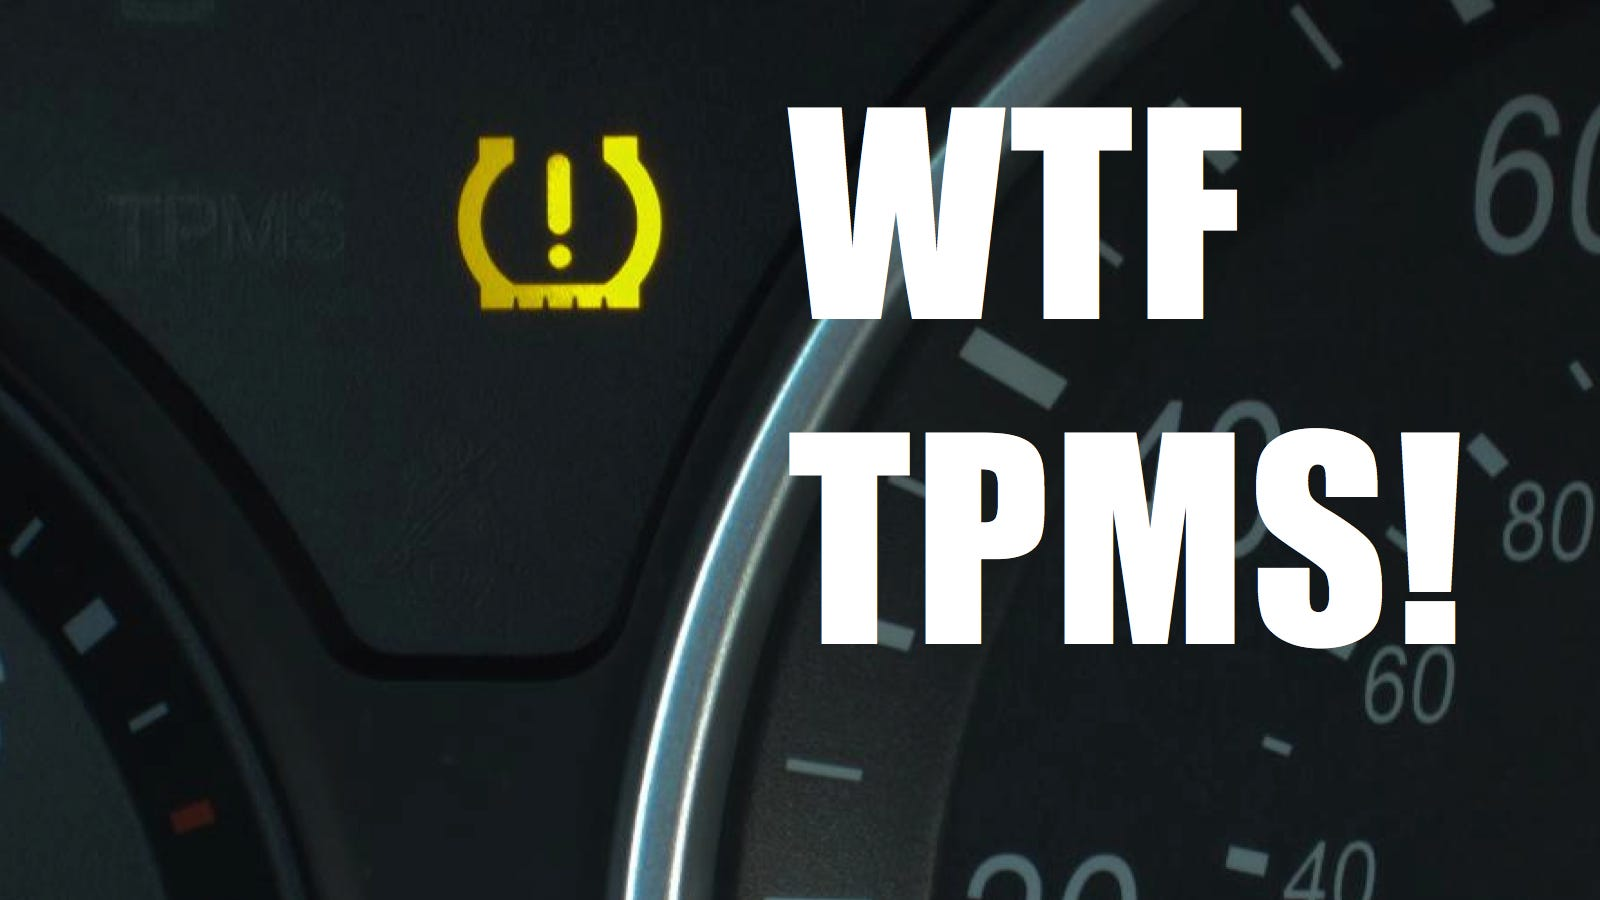 Why the tire pressure light is the most useless warning light buycottarizona Choice Image